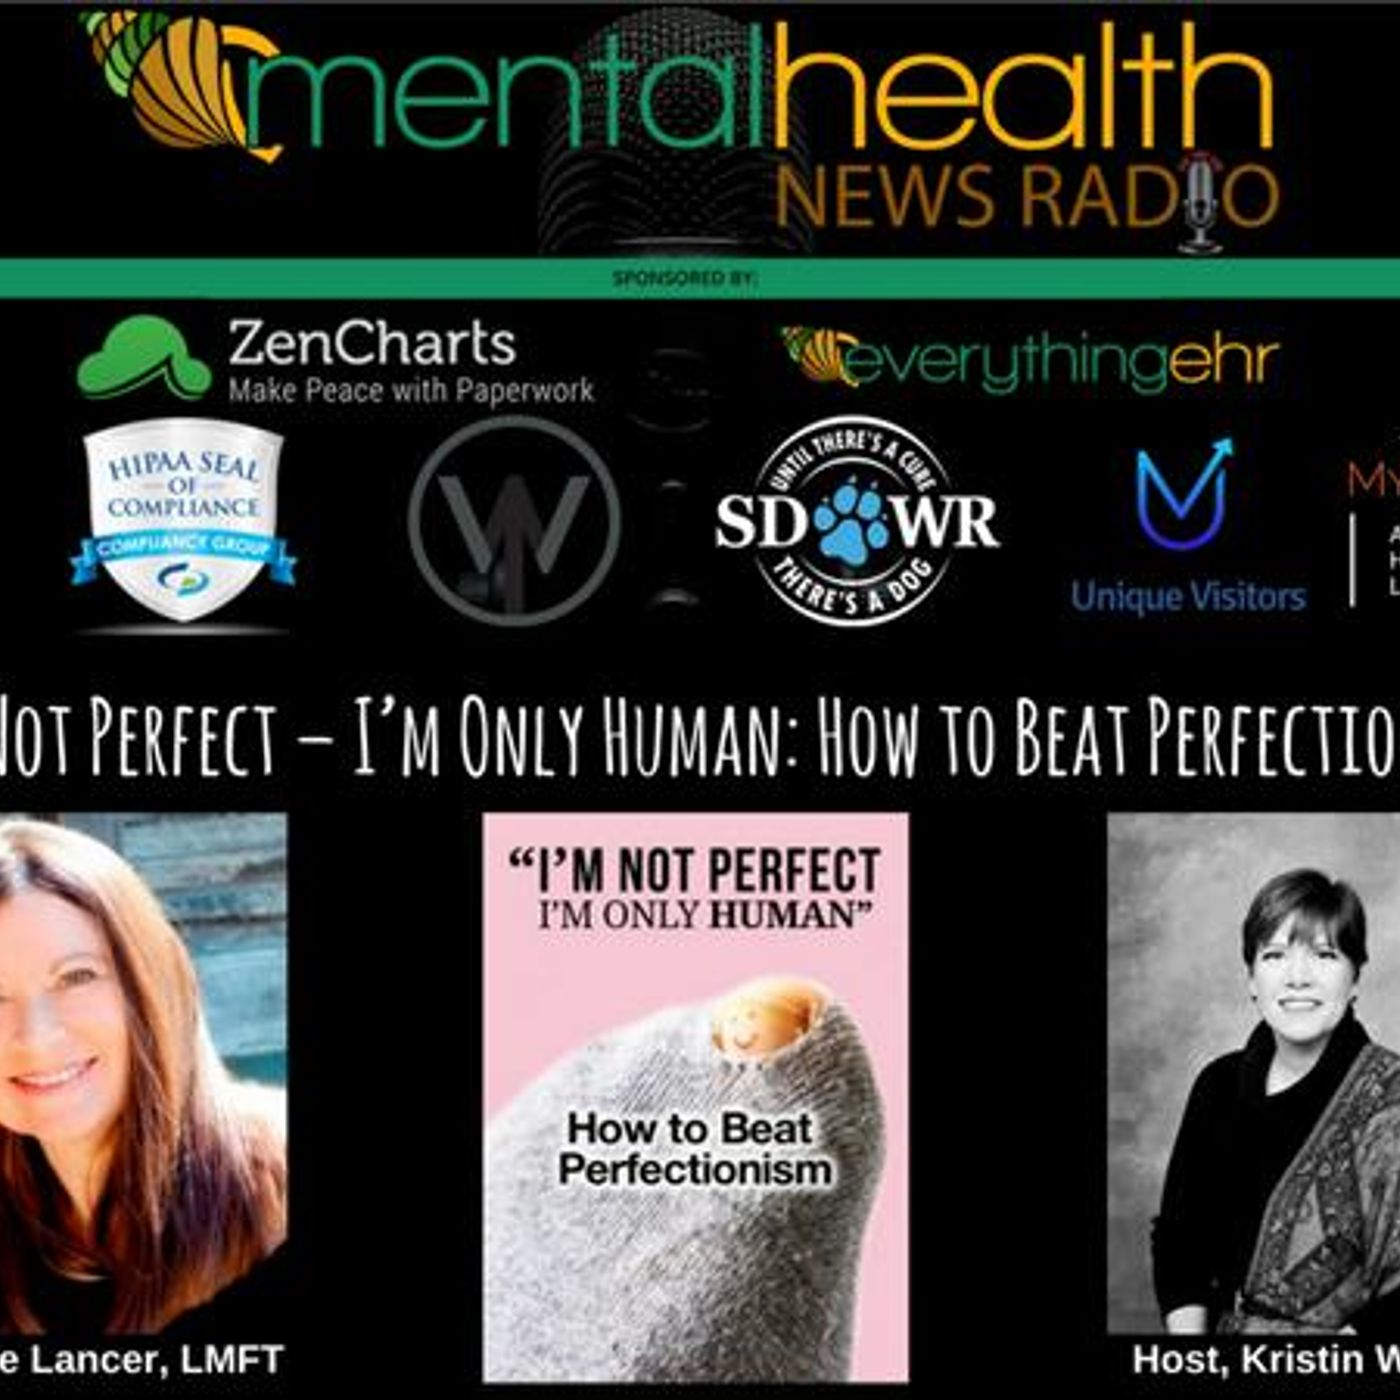 Mental Health News Radio - I'm Not Perfect – I'm Only Human: How to Beat Perfectionism with Darlene Lancer